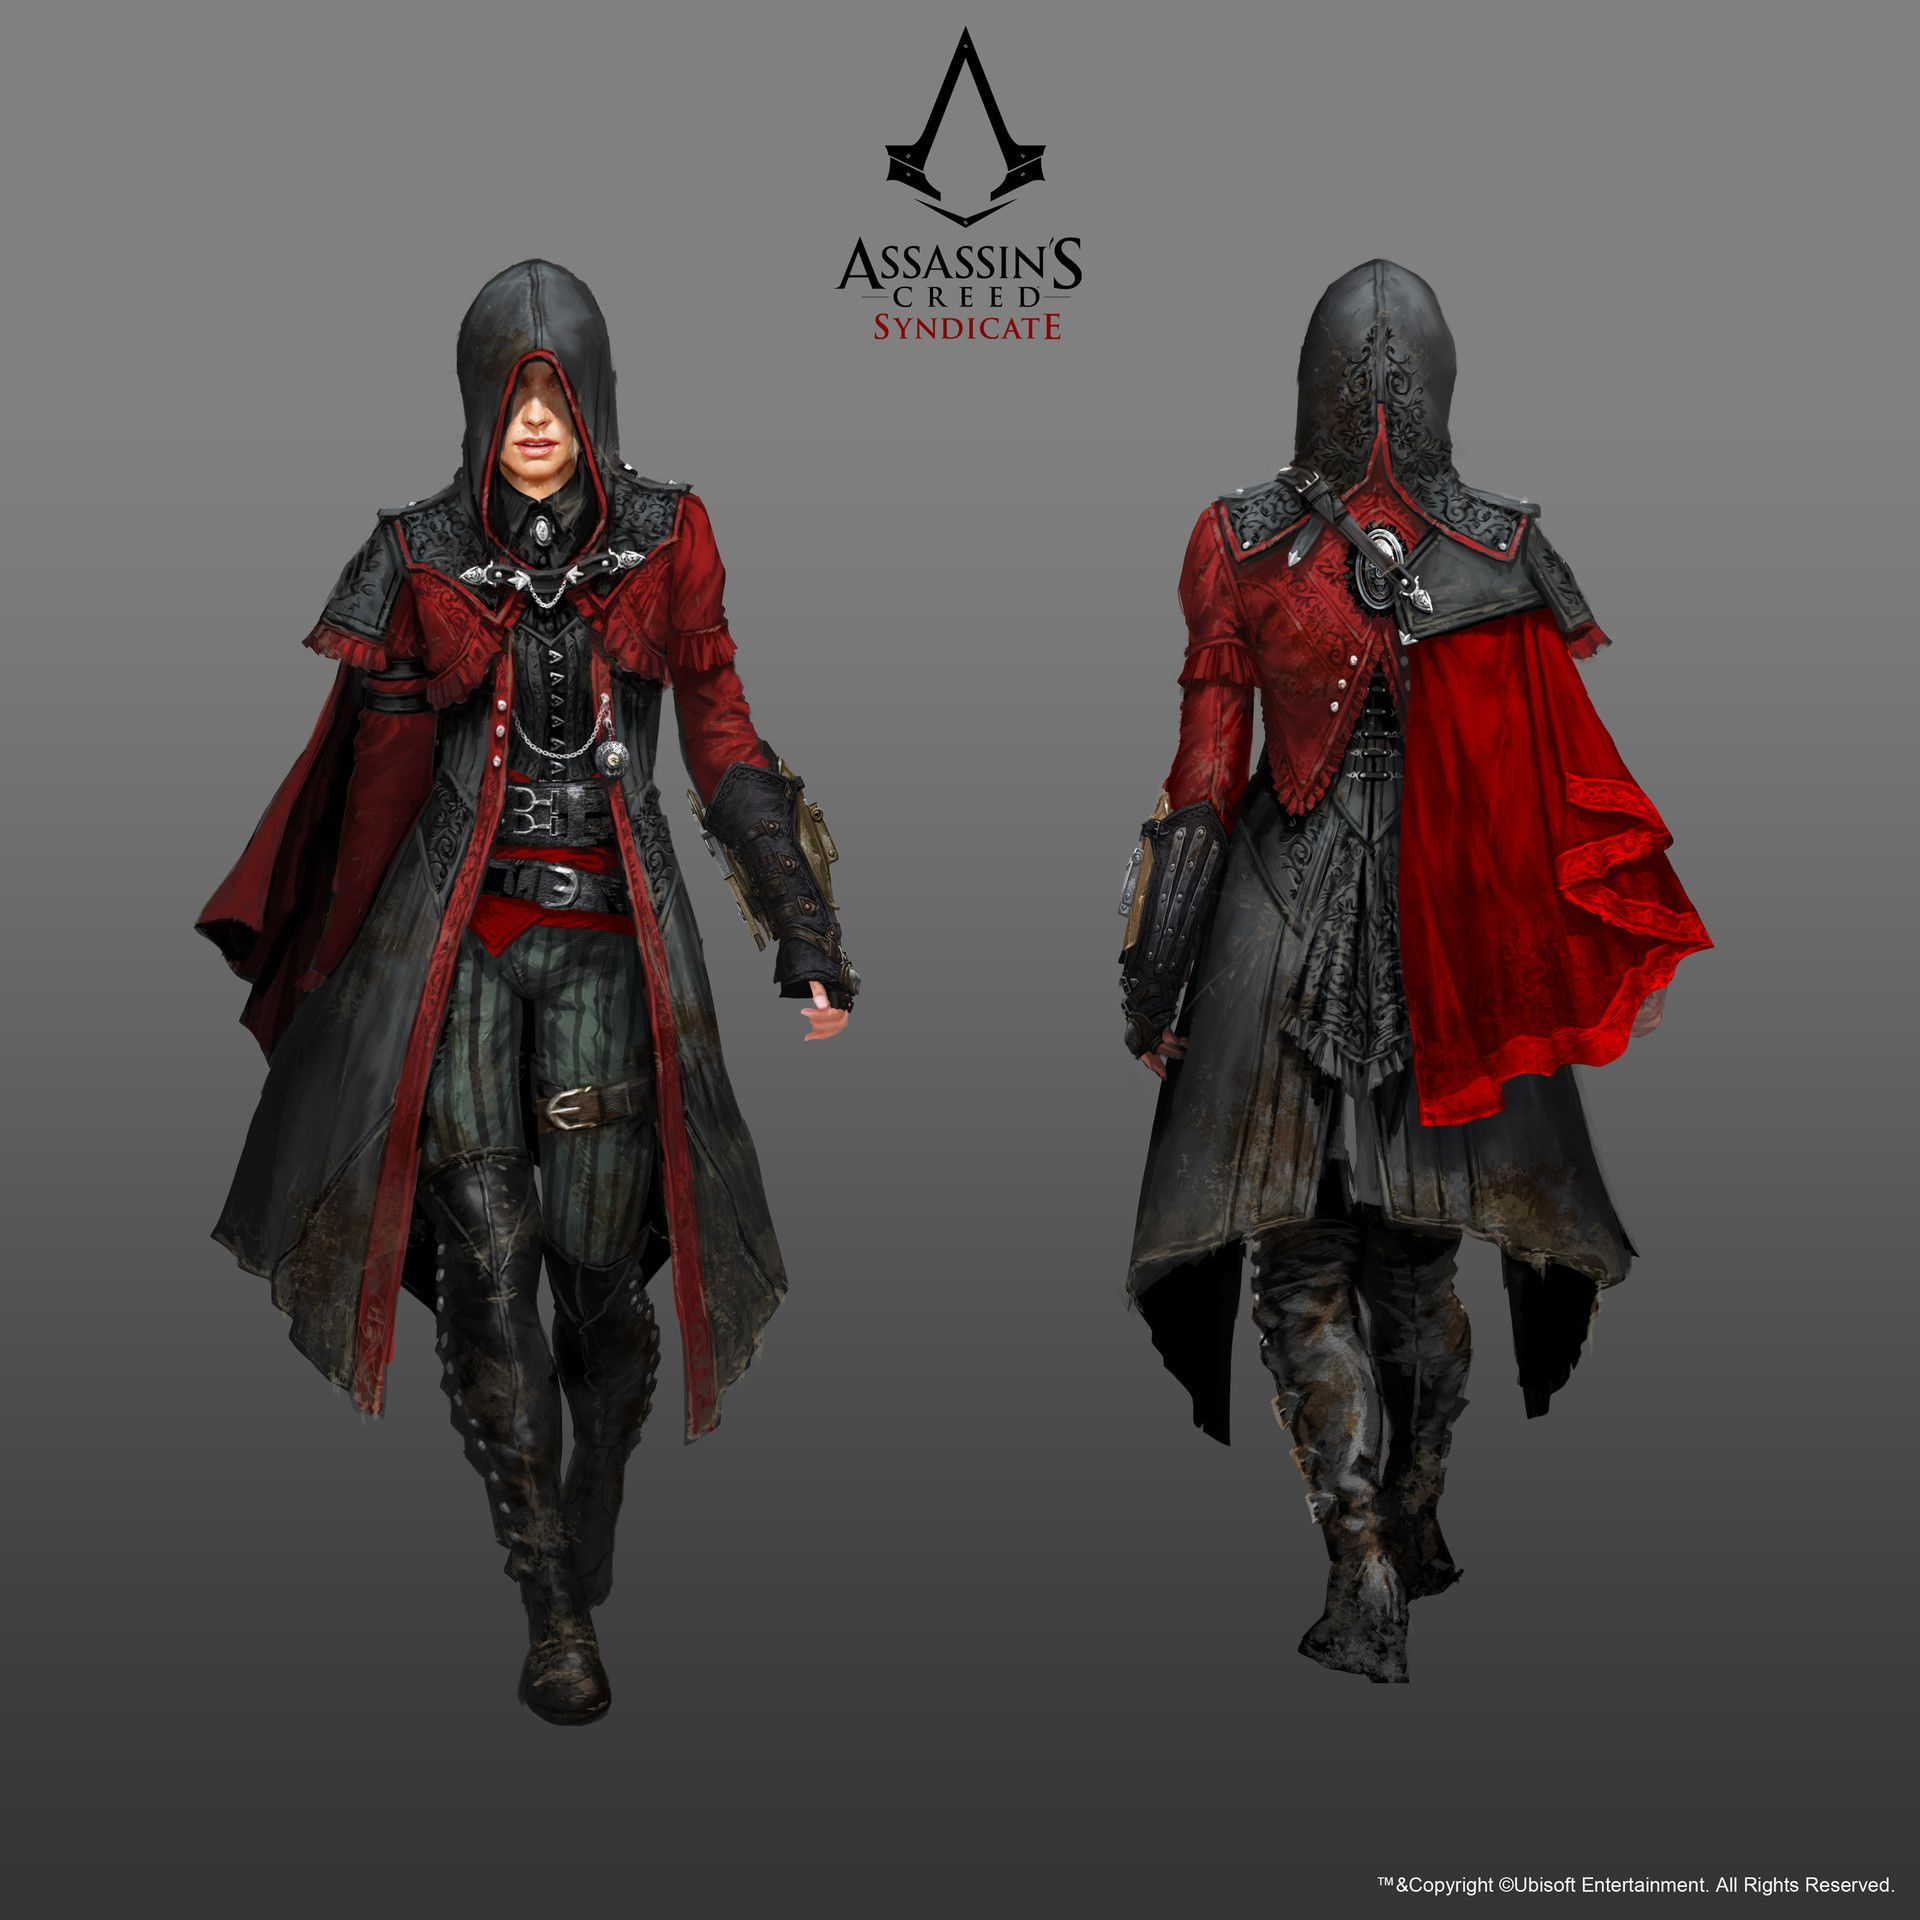 Artstation Assassin S Creed Syndicate Grant Hillier Assassins Creed Cosplay Assassins Creed Art Assassins Creed Female